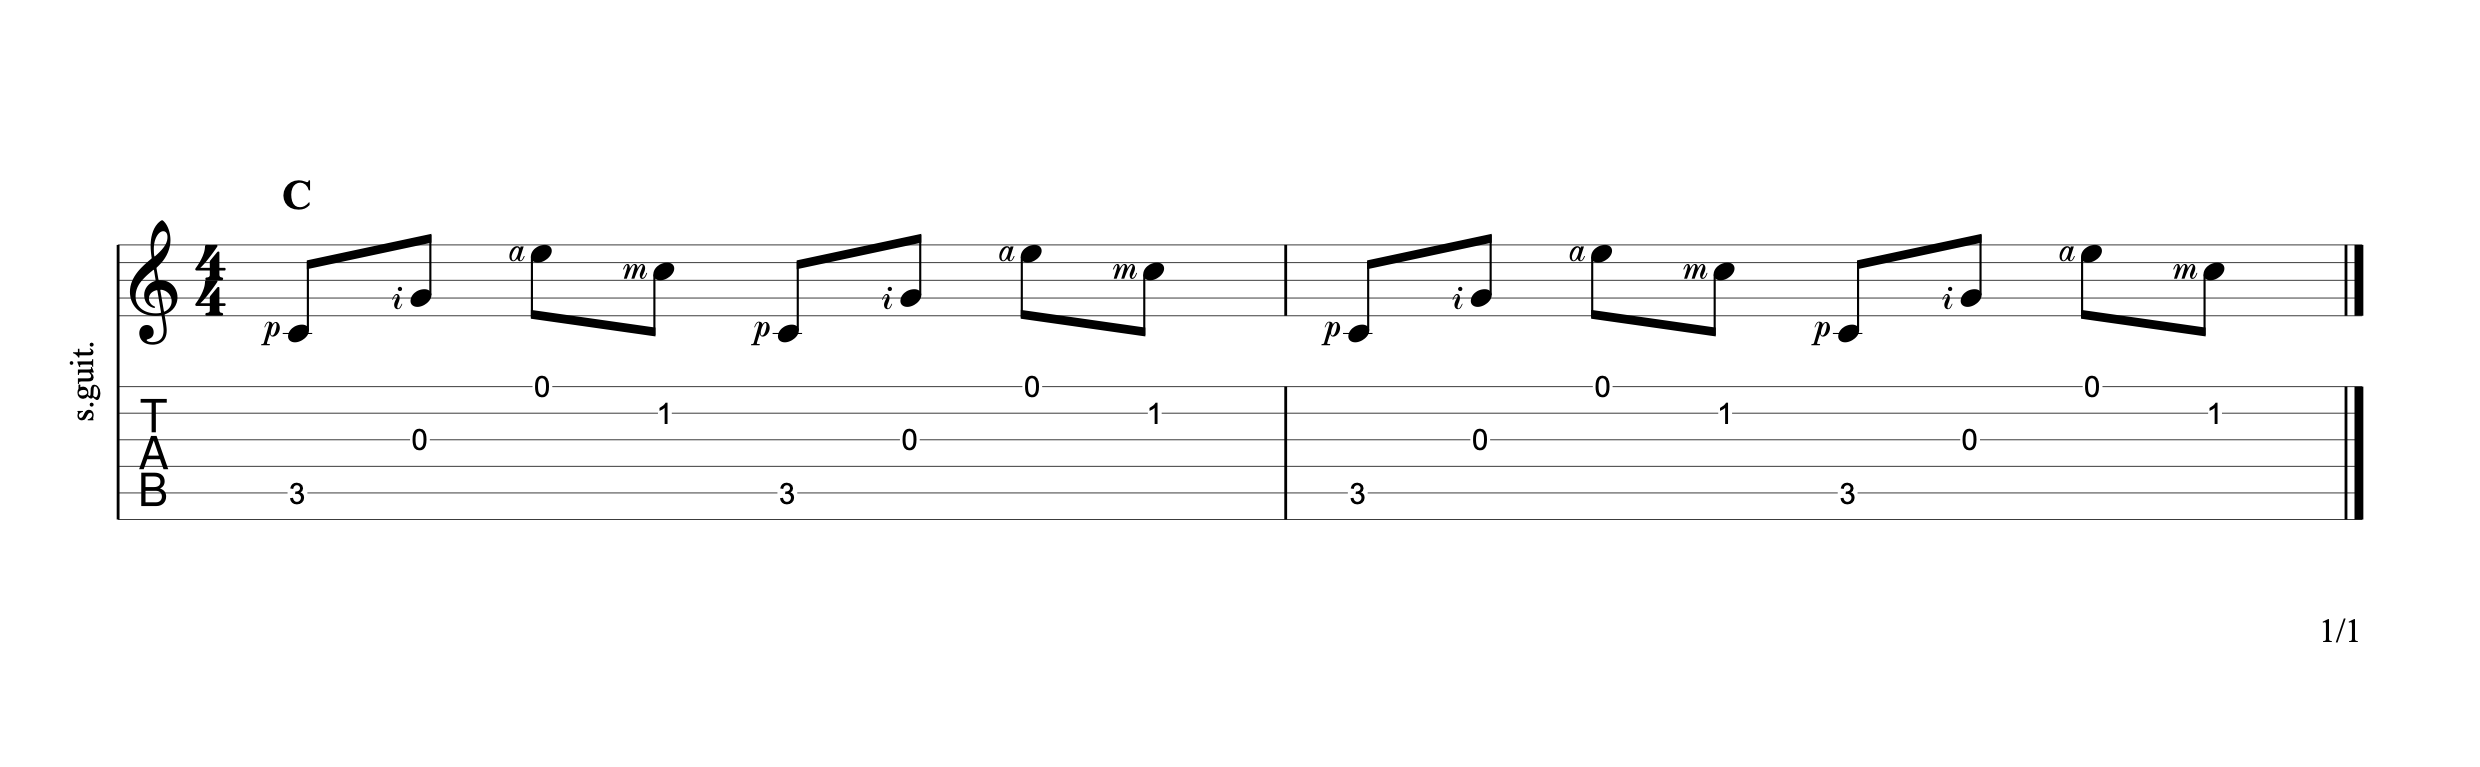 Fingerpicking Chords p8